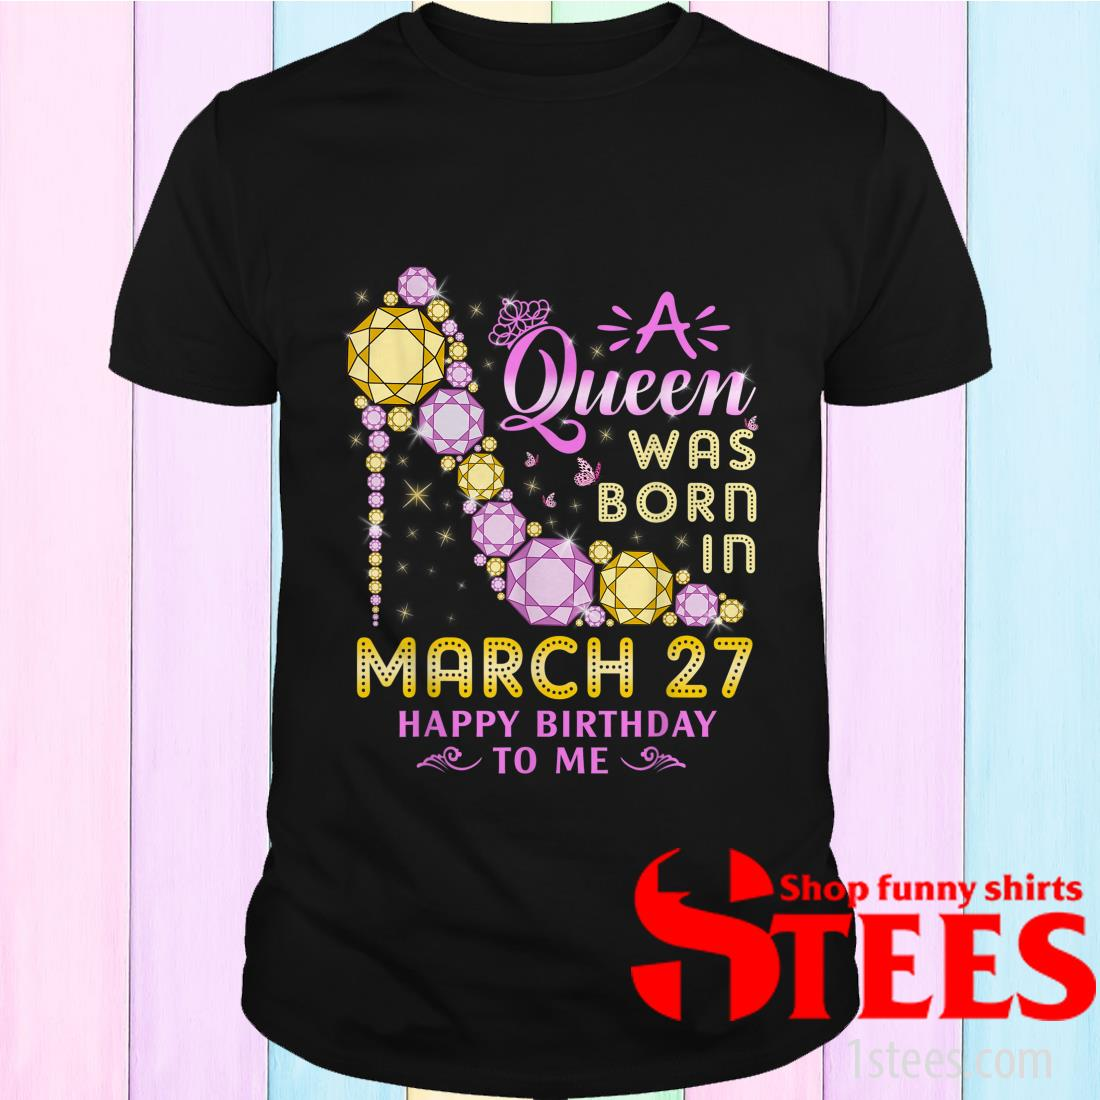 A Queen Was Born In March 27 Happy Birthday To Me Shirt